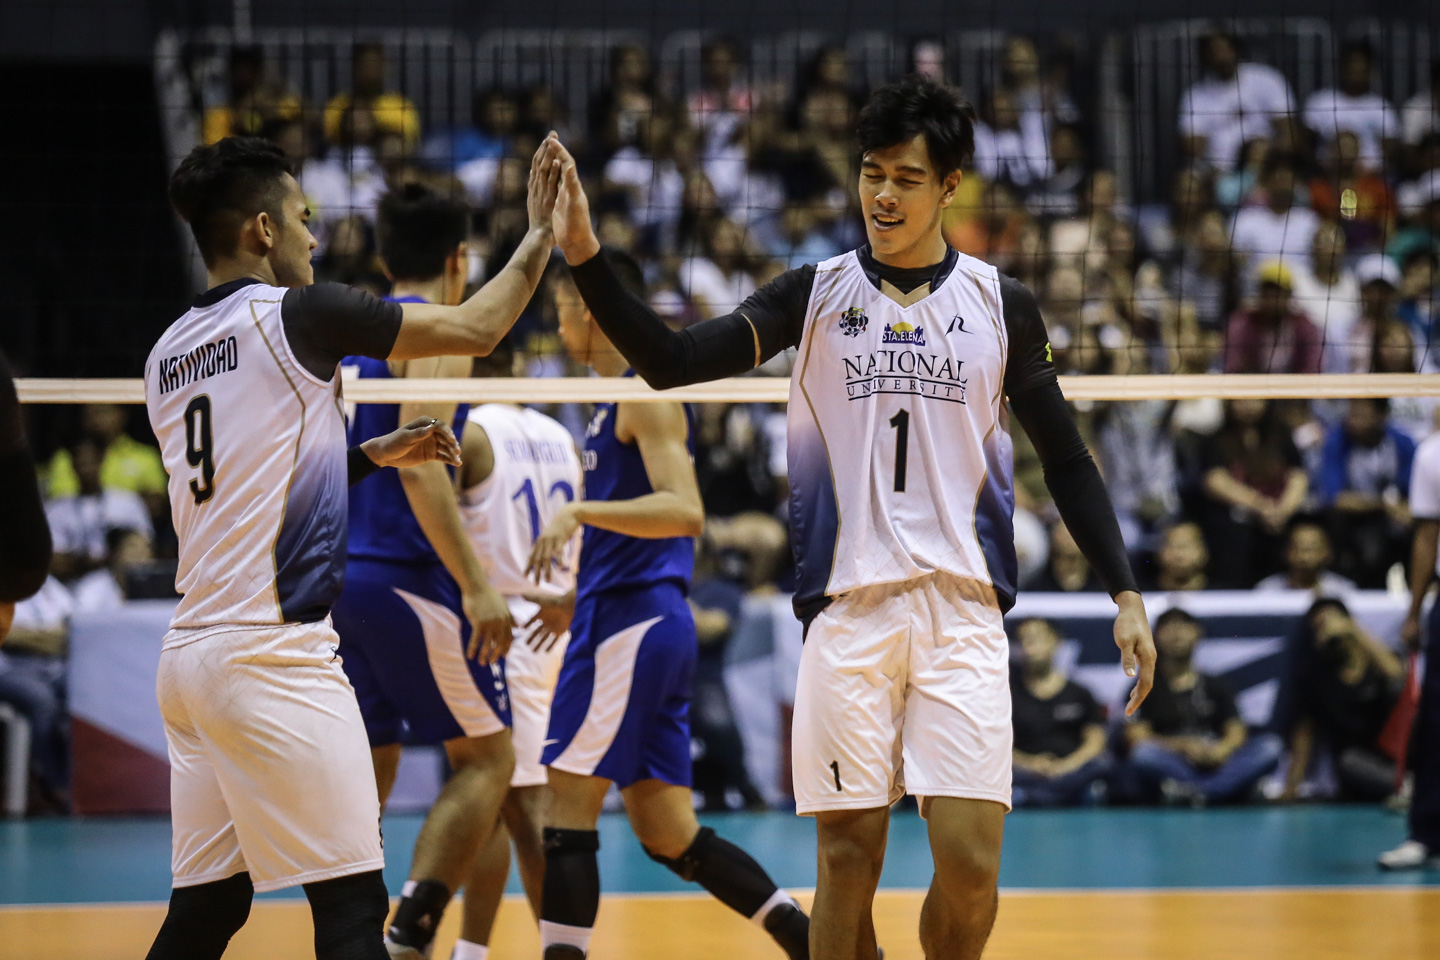 Rivalry continues: Ateneo, La Salle vie for UAAP women's volleyball crown